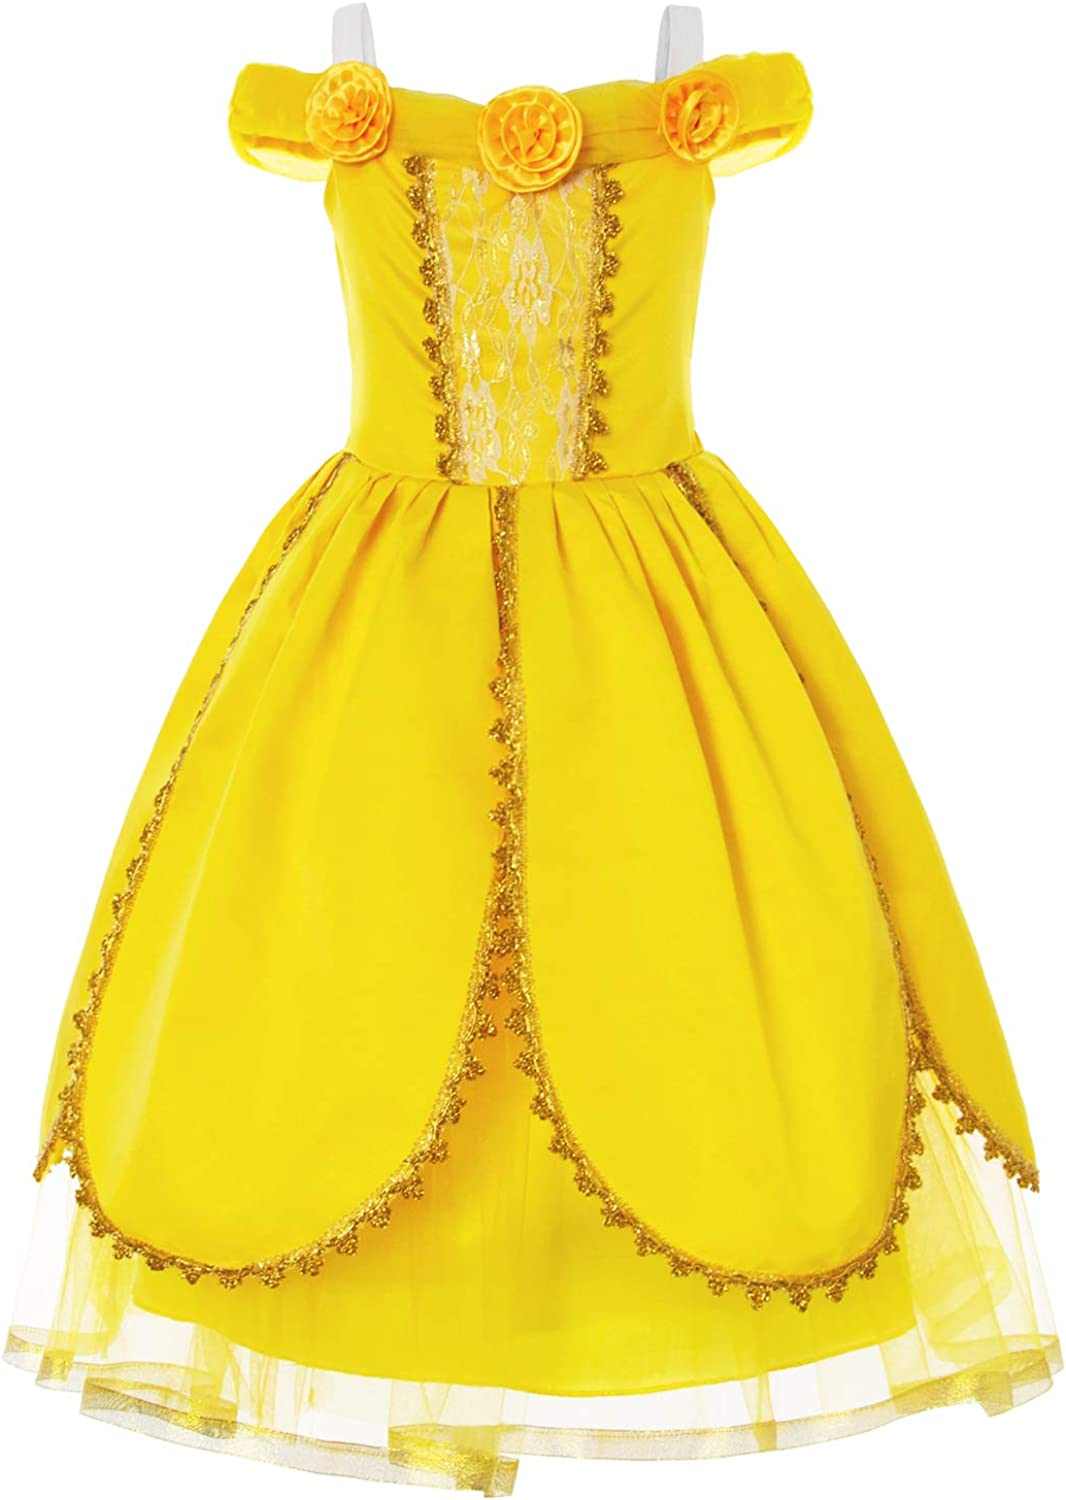 Joy Join Princess Costume Deluxe Fancy Yellow Dress for Toddler Girls Party  Dress Up